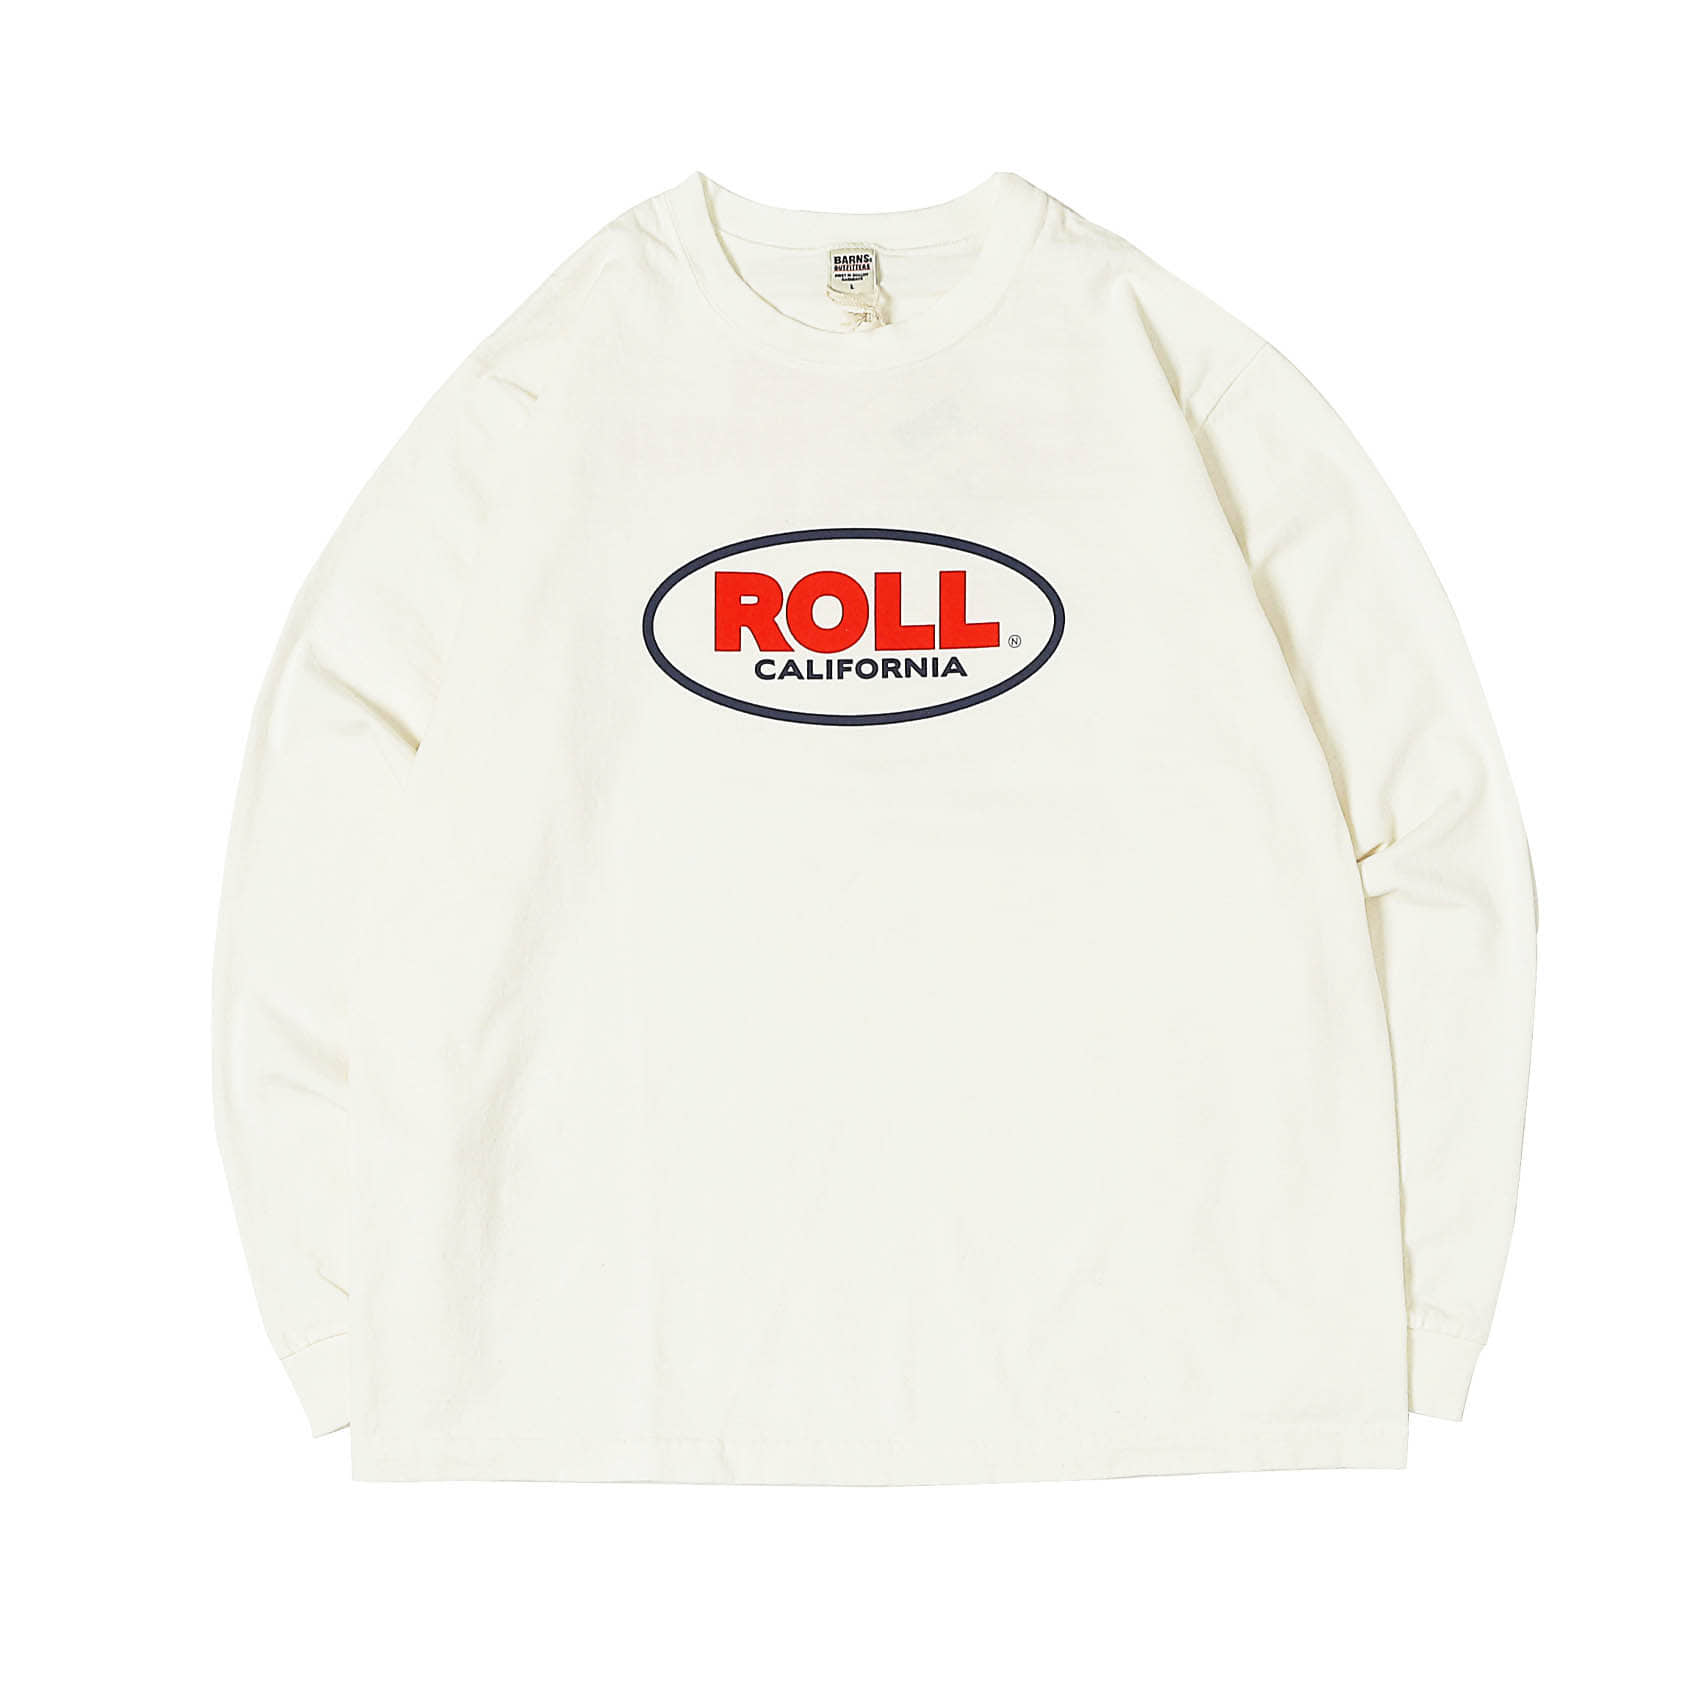 L/S PRINTED TEE - ROLL WHITE